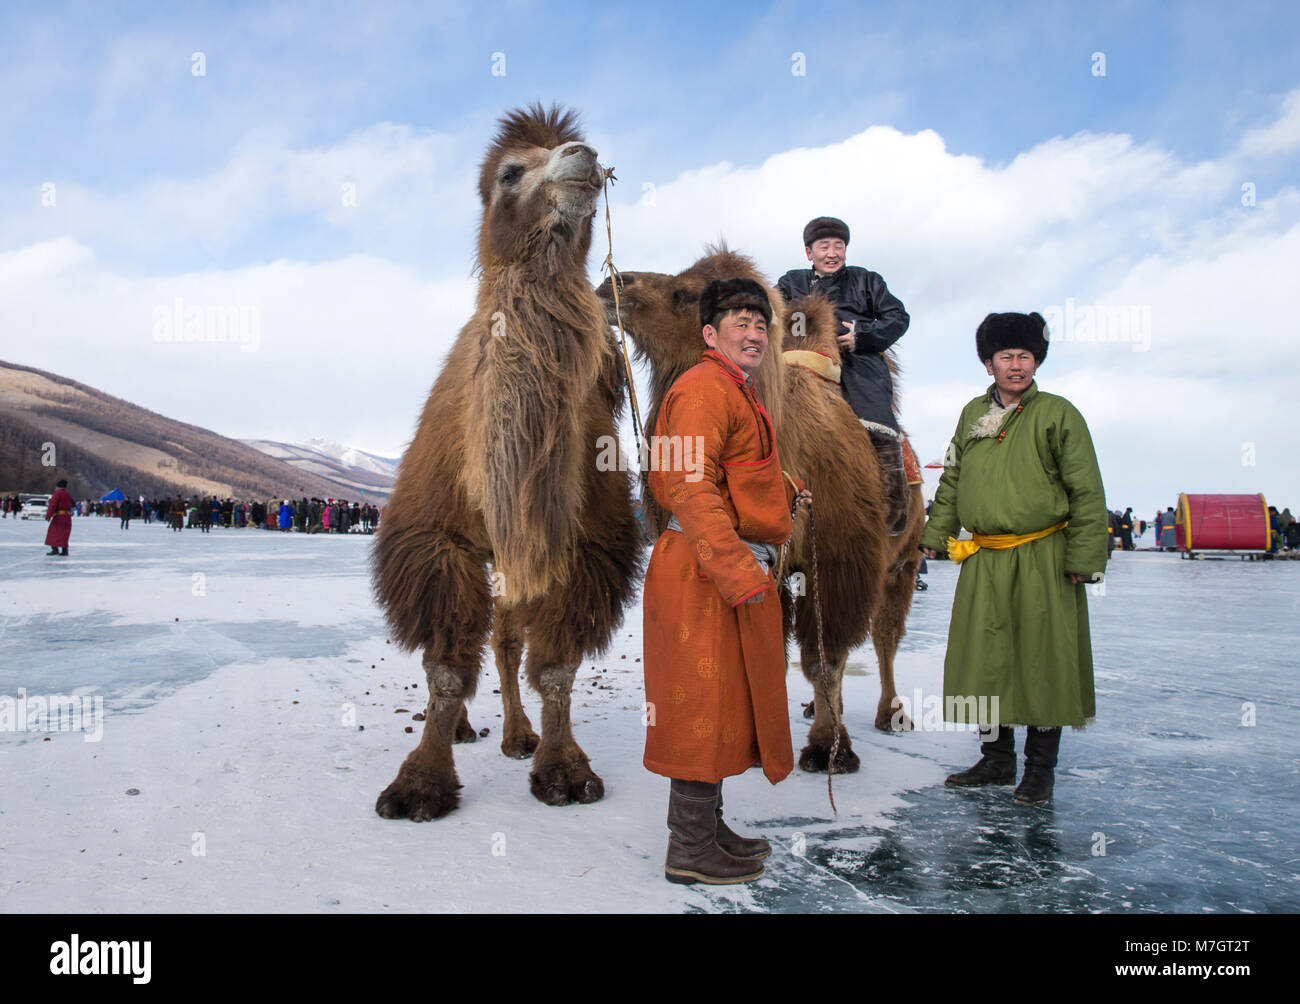 Hatgal, Mongolia, 3rd March 2018: mongolian people on a frozen lake Khuvsgul during a ice festival in winter - Stock Image